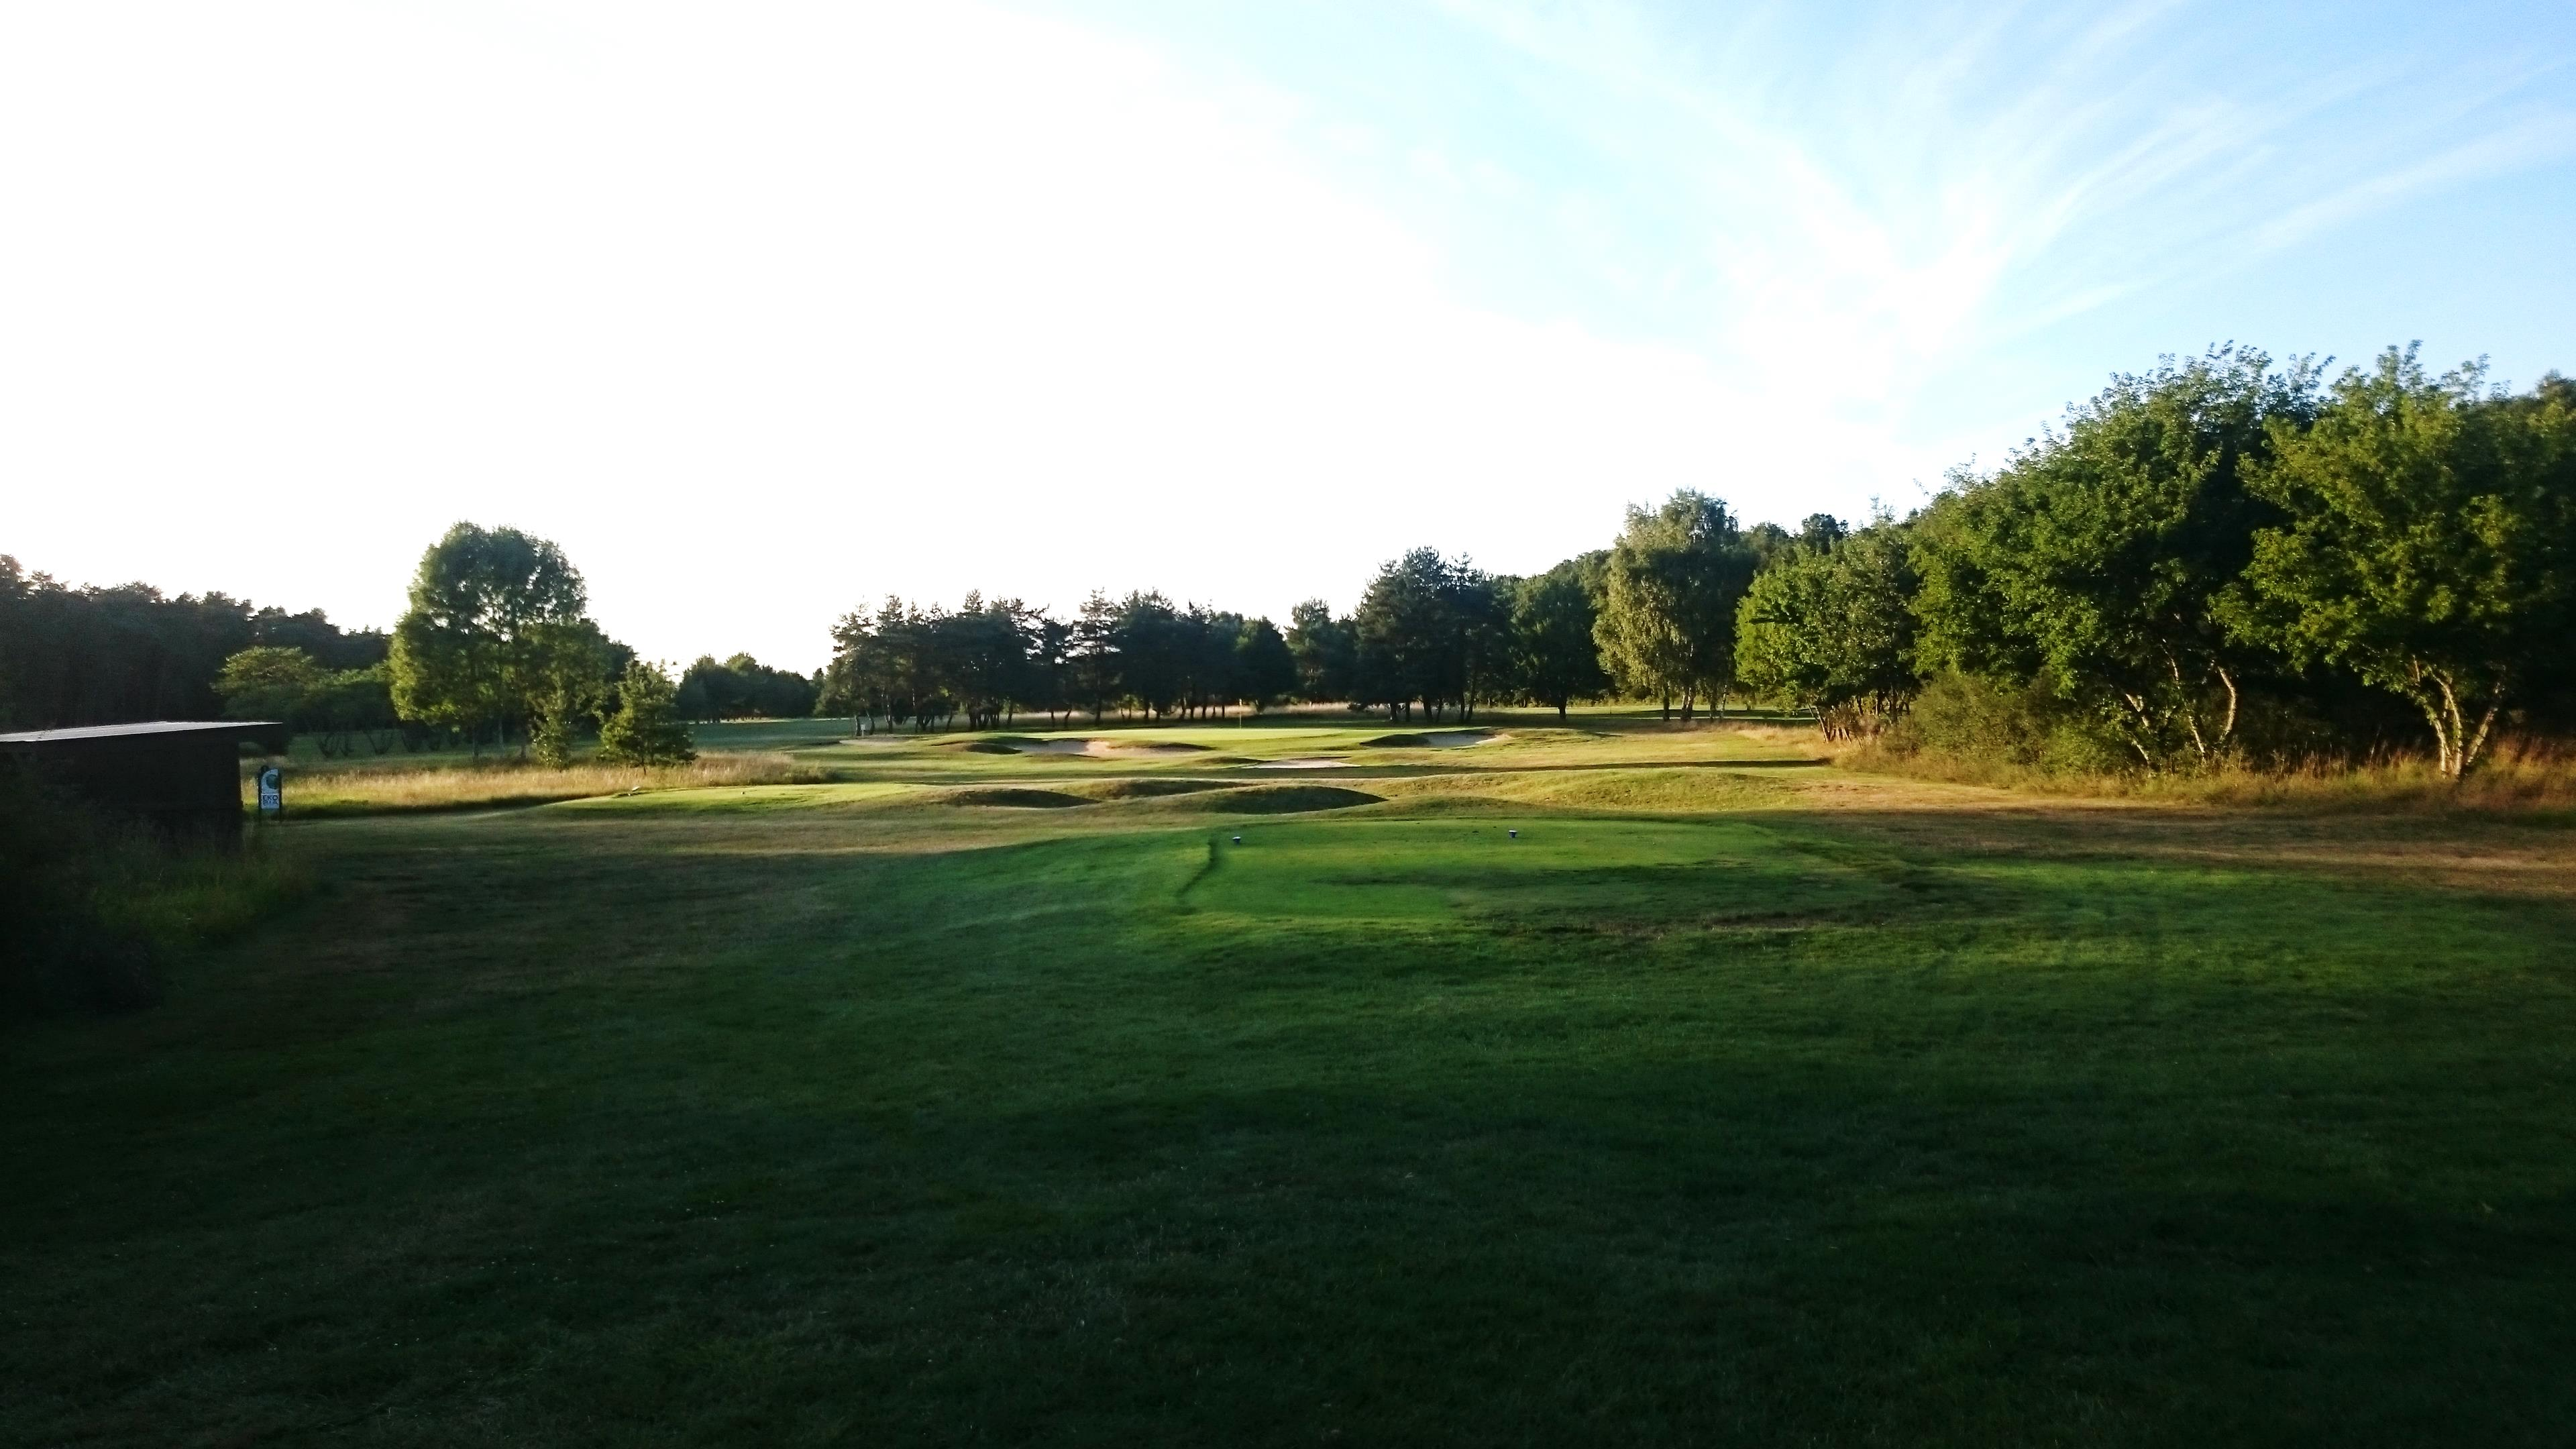 Golf du ch teau de cheverny golf international 18 trous for Entretien jardin grenoble